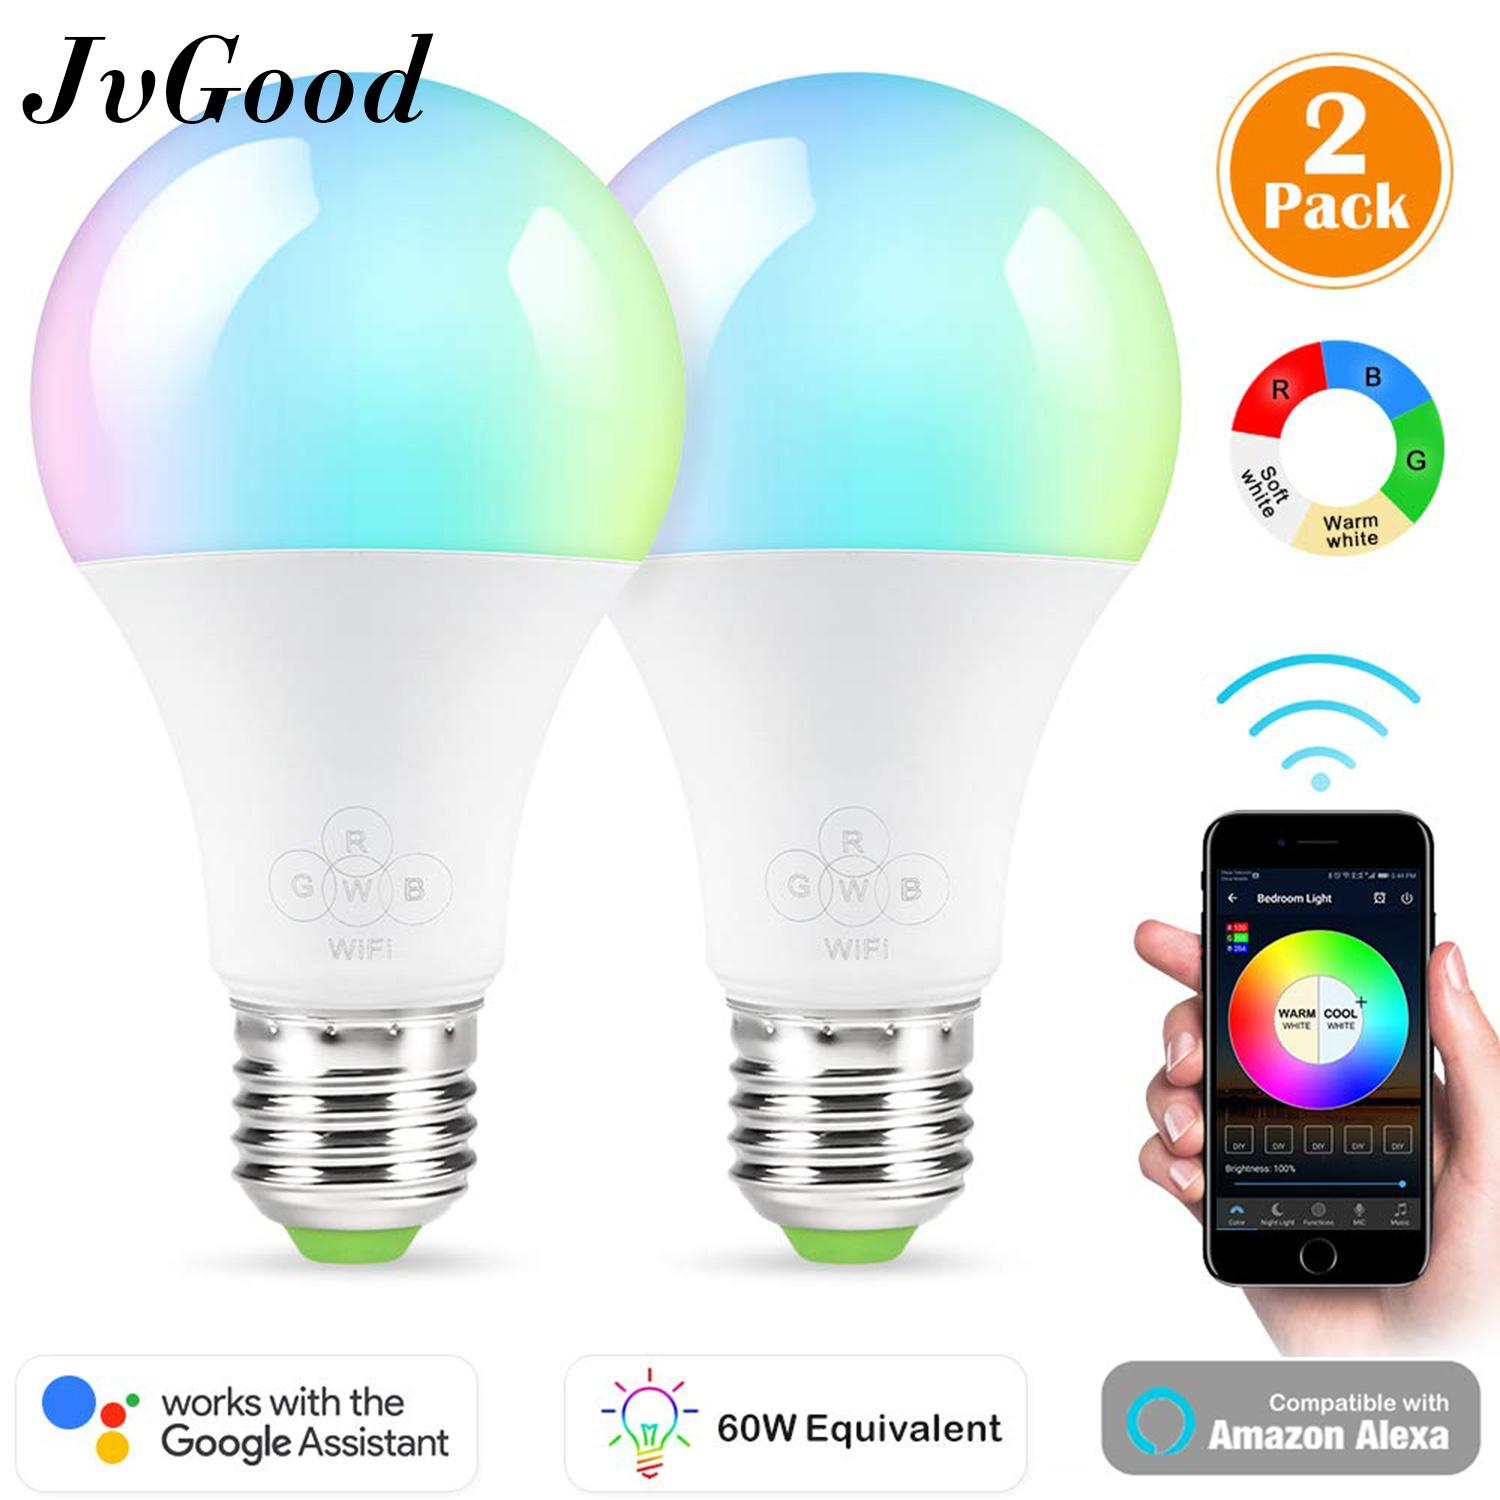 JvGood WiFi Smart Light Bulbs Mulit Colour Colorful Light 4.5W E27 RGB color Dimmable Support Amazon Alexa & Google Home IOS/Android APP Remote Control (2 Packs)